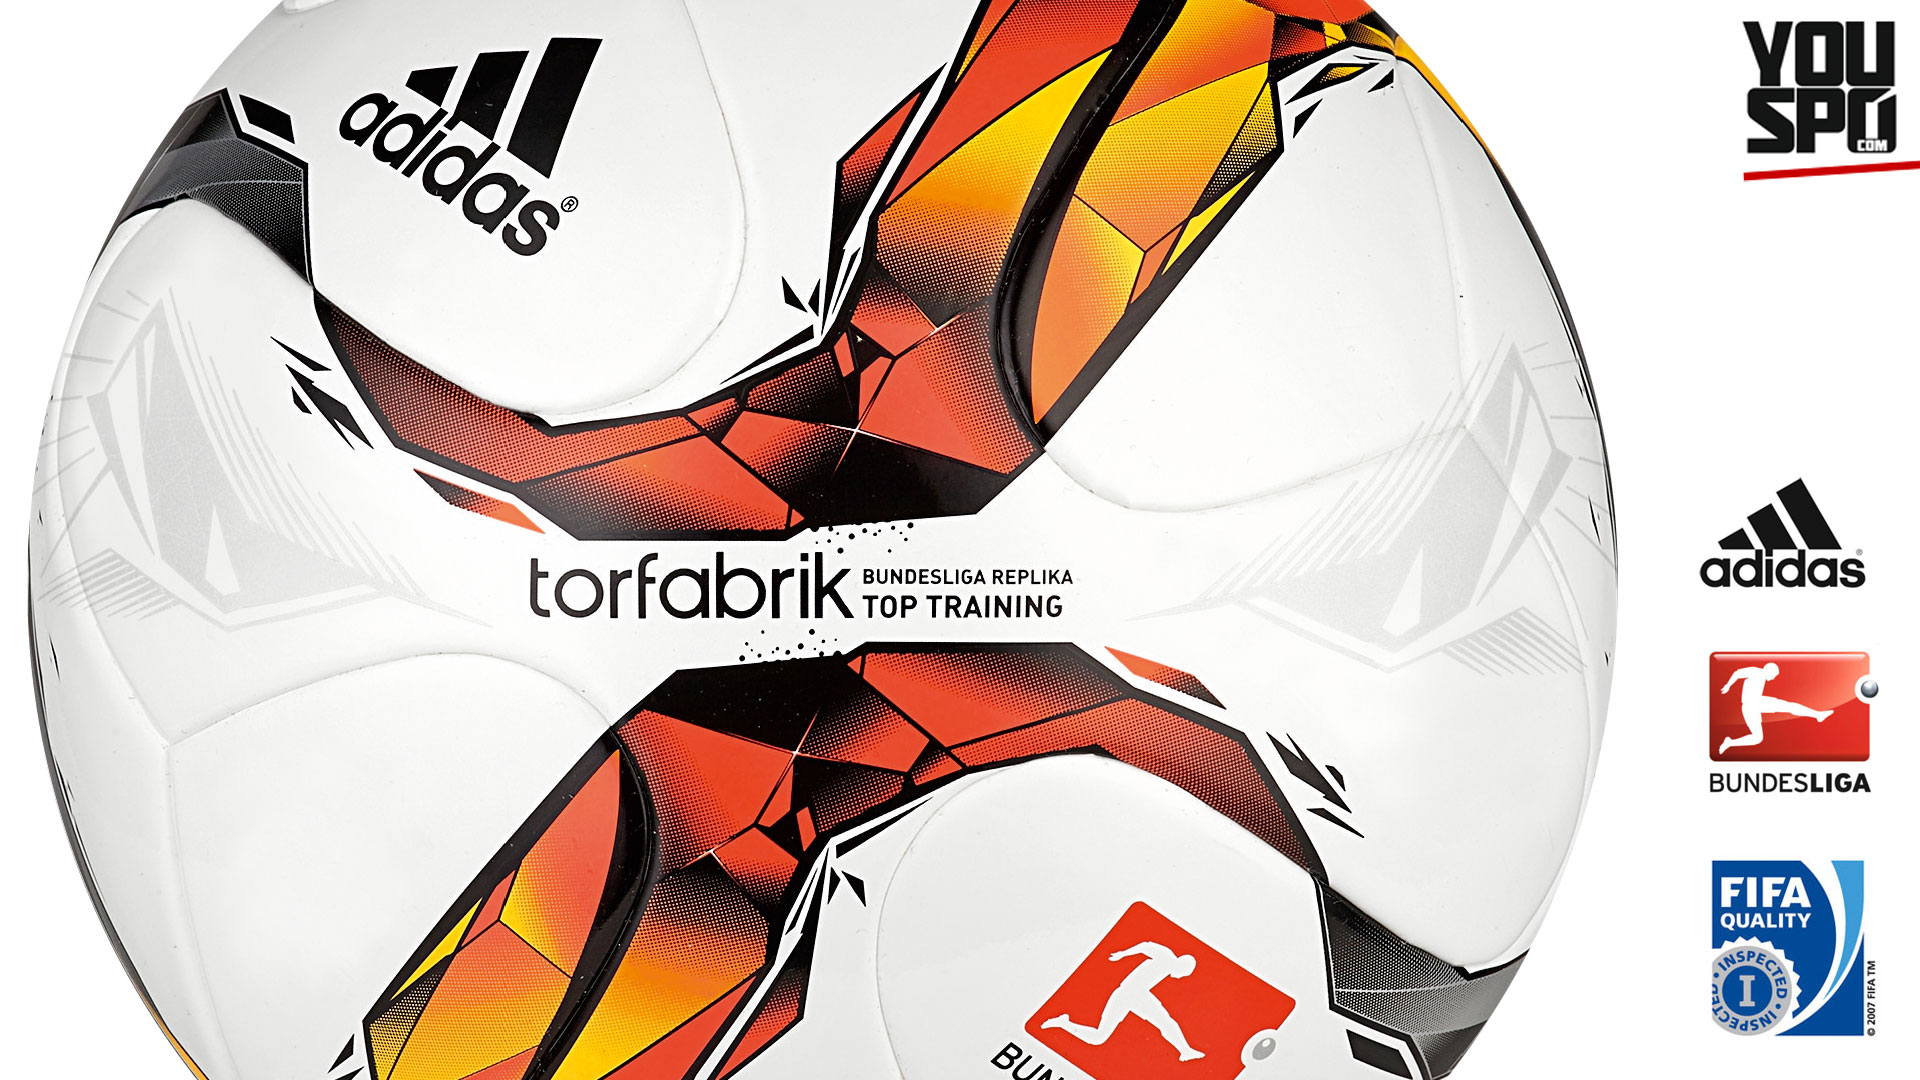 Adidas Torfarbik 15/16 Top Training (2015-2016)